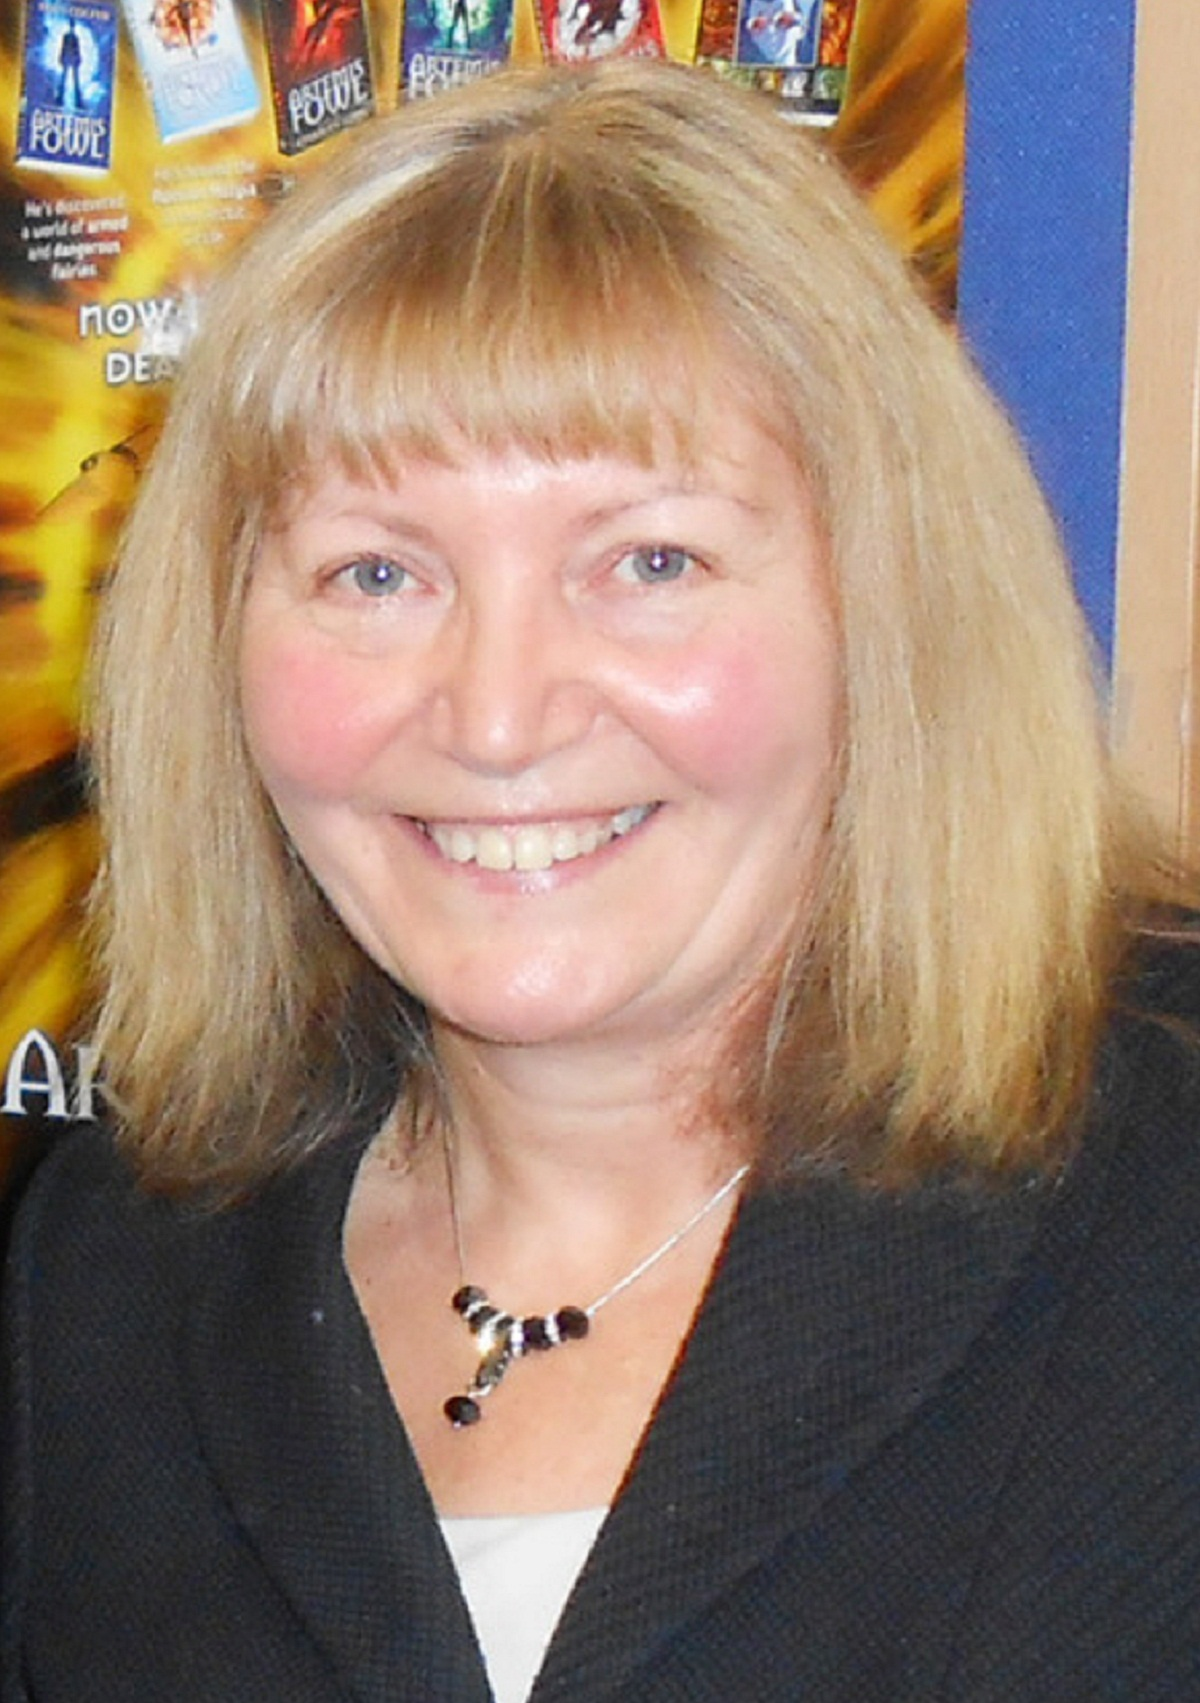 Jan Renou, executive headteacher of Skipton Girls' High School